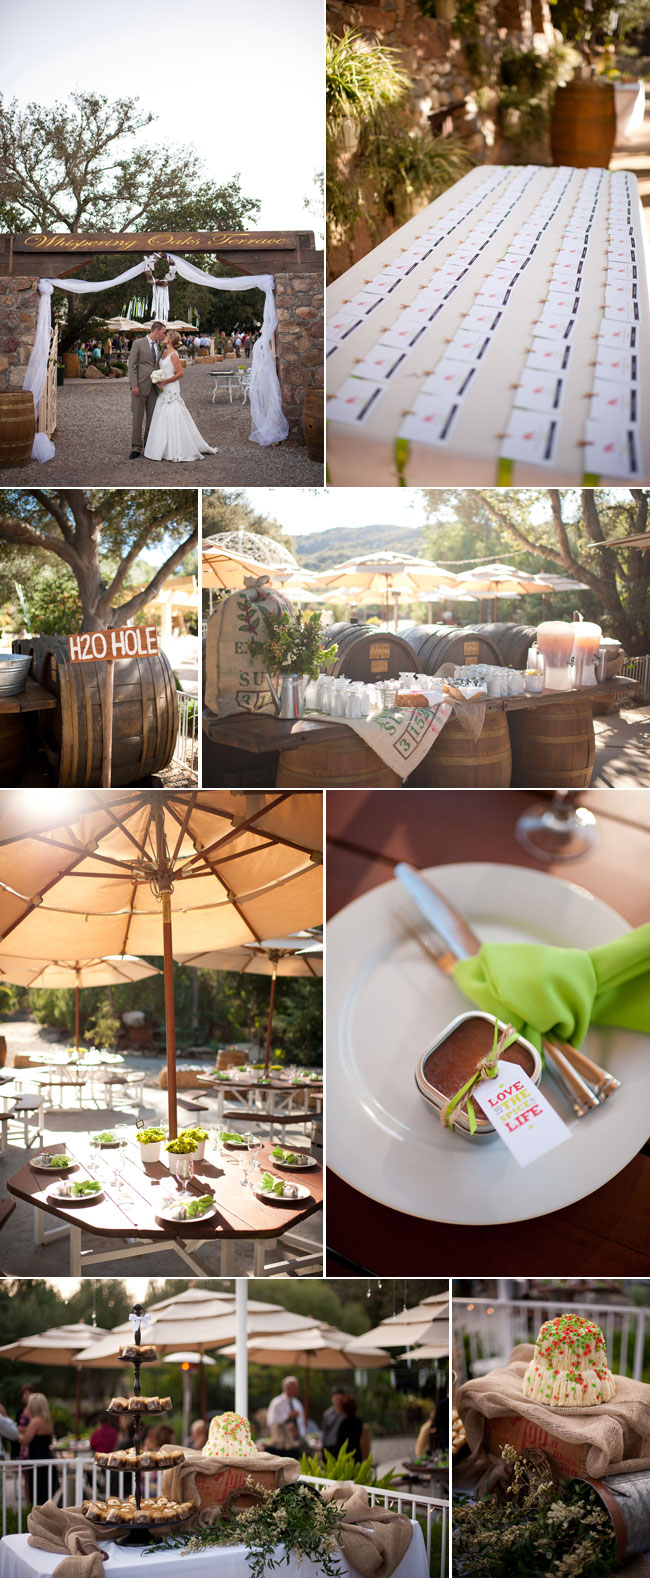 Whispering Oaks Terrace wedding photos - bride and groom kiss, wedding table setting, dessert table with burlap, wine barrels holding up drink station